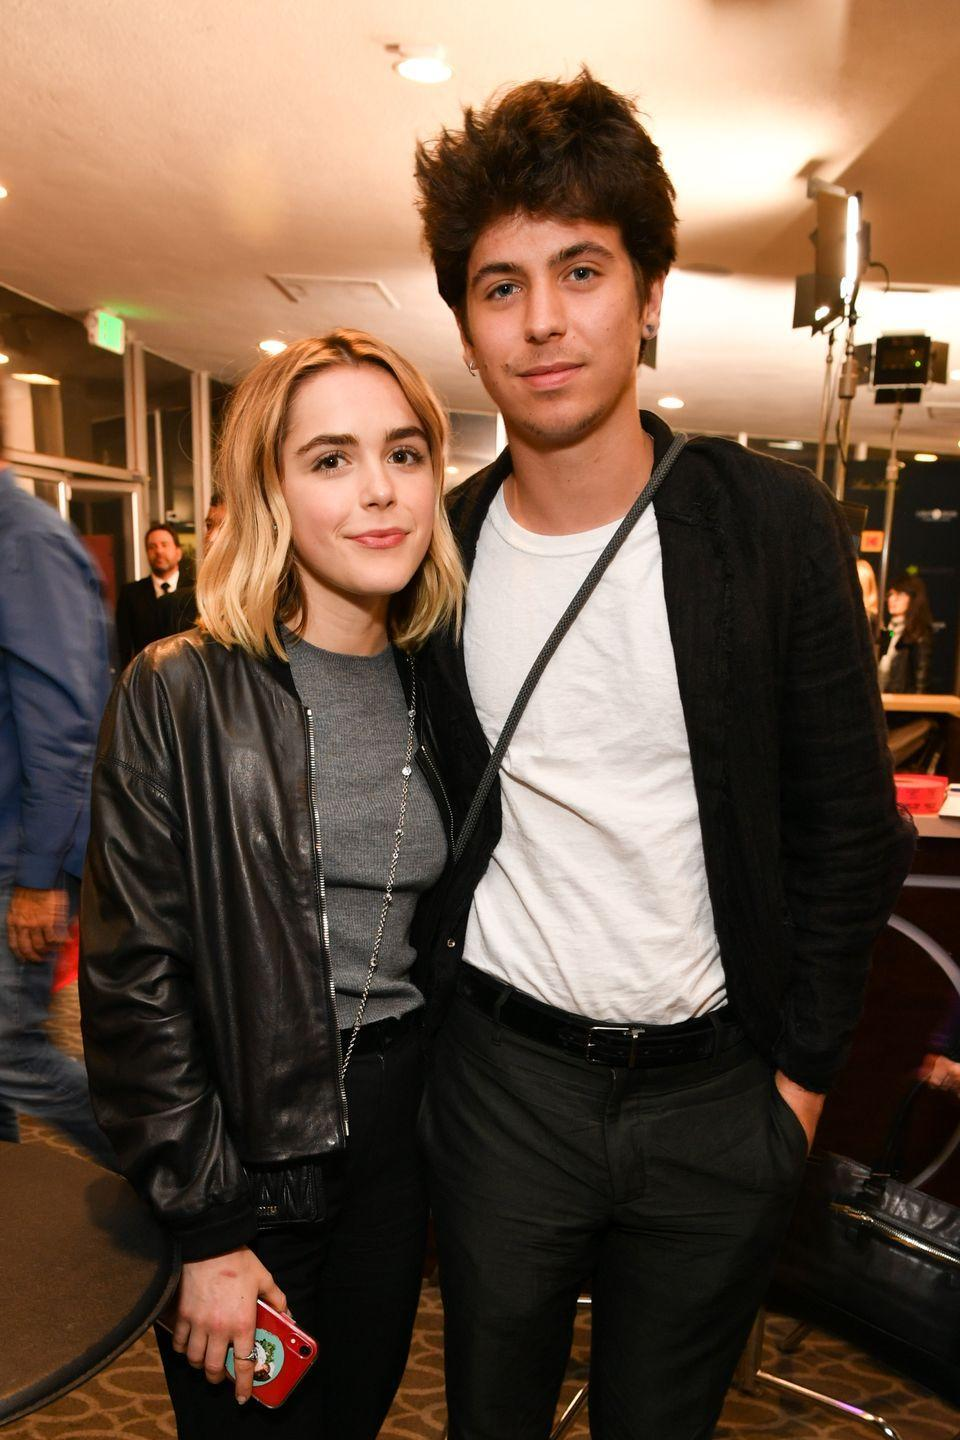 "<p>Shipka and model Charlie Oldman were first rumored to be dating back in March 2019 when they were spotted out on a date in West Hollywood. Since then, the couple decided to take their relationship Instagram <a href=""https://www.instagram.com/p/BwAXX14n2KQ/"" rel=""nofollow noopener"" target=""_blank"" data-ylk=""slk:official"" class=""link rapid-noclick-resp"">official</a>, but make it a point to stay out of the public eye.</p>"